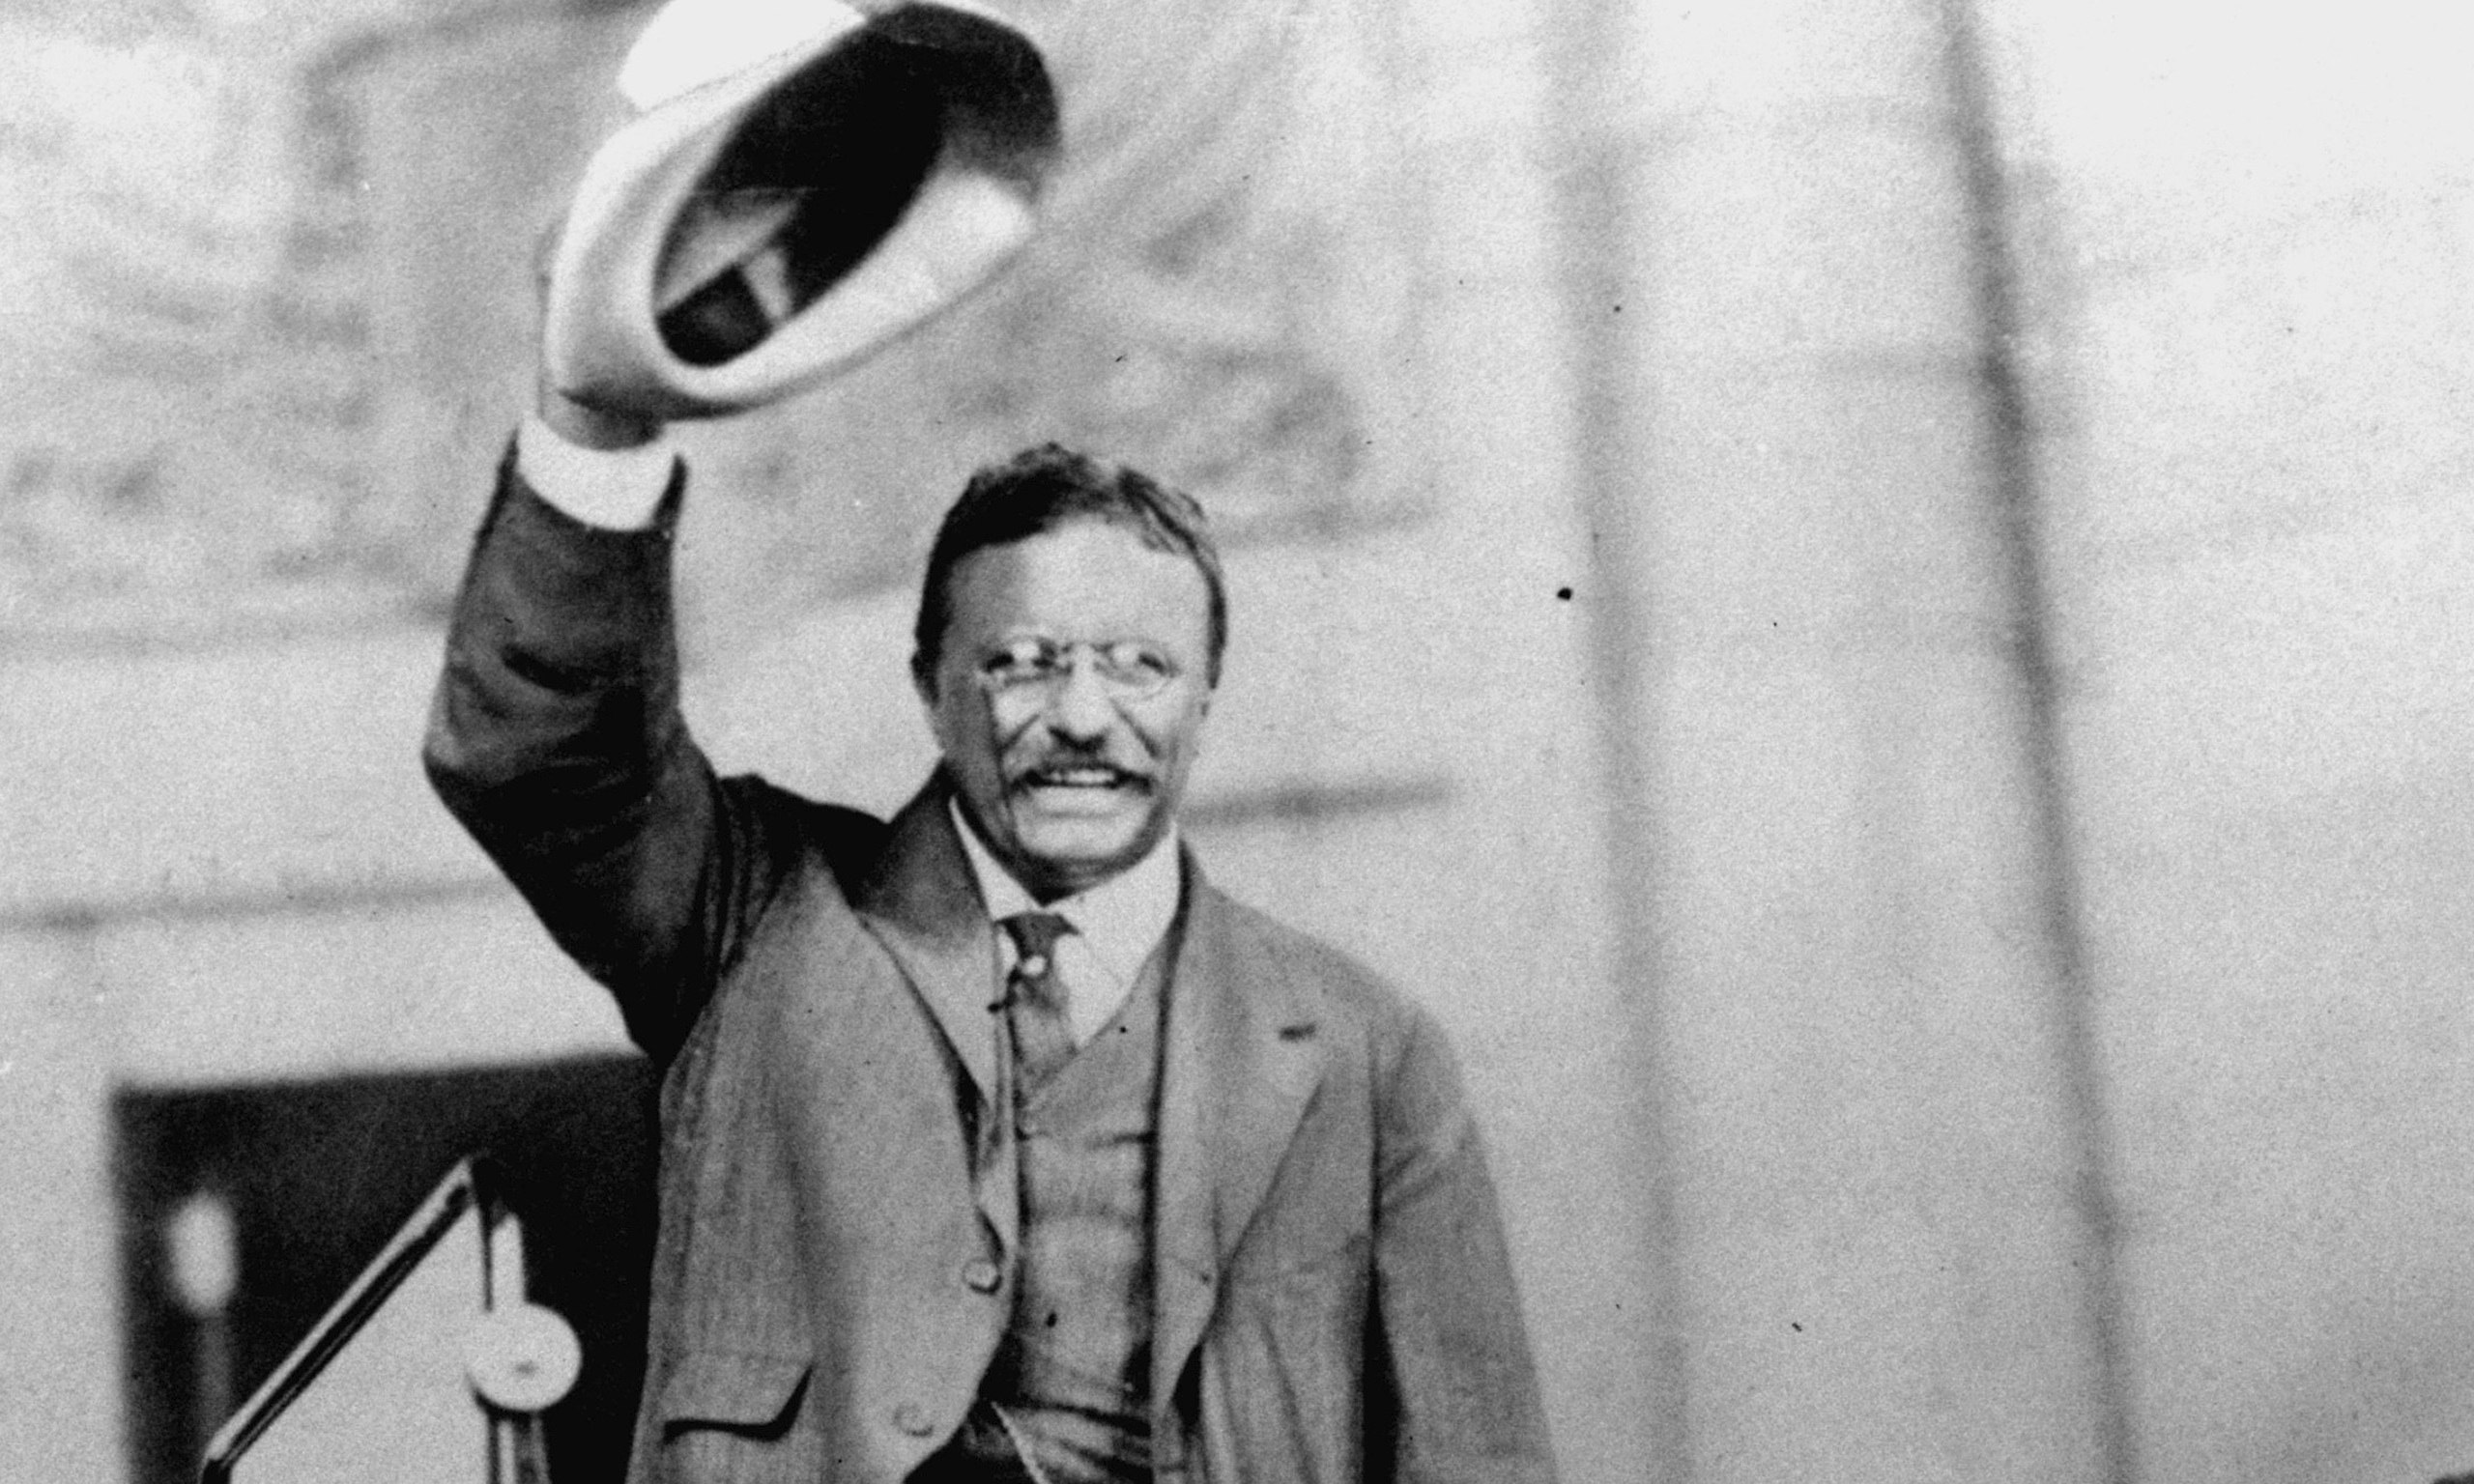 Teddy Roosevelt Quotes Top 10 Dumbest Quotesprogressive Republican Hero Theodore